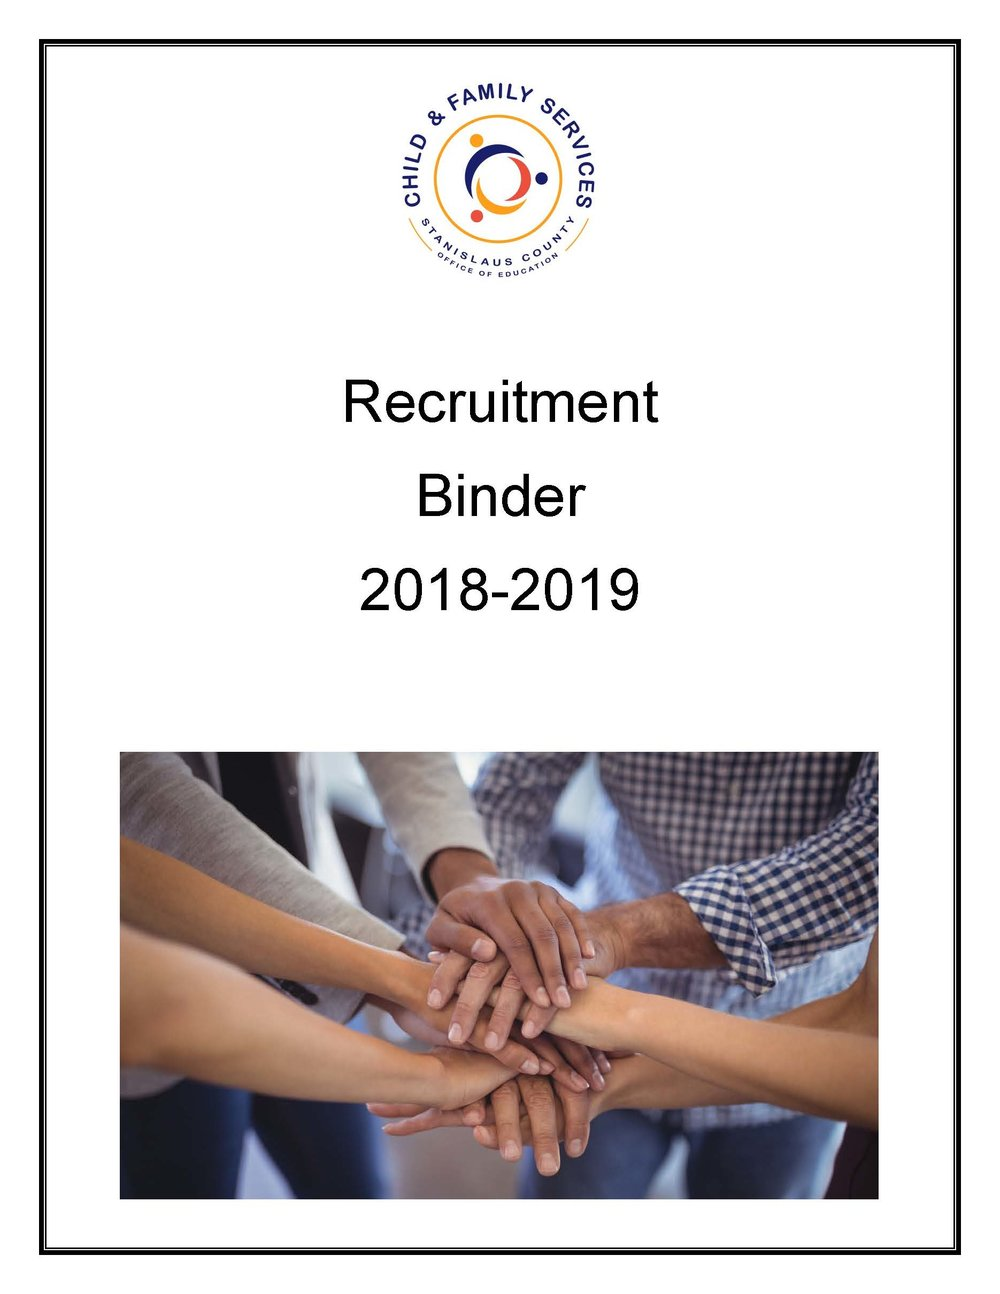 Recruitment+Binder+Cover+and+Table+of+Contents+(3)_Page_1.jpg